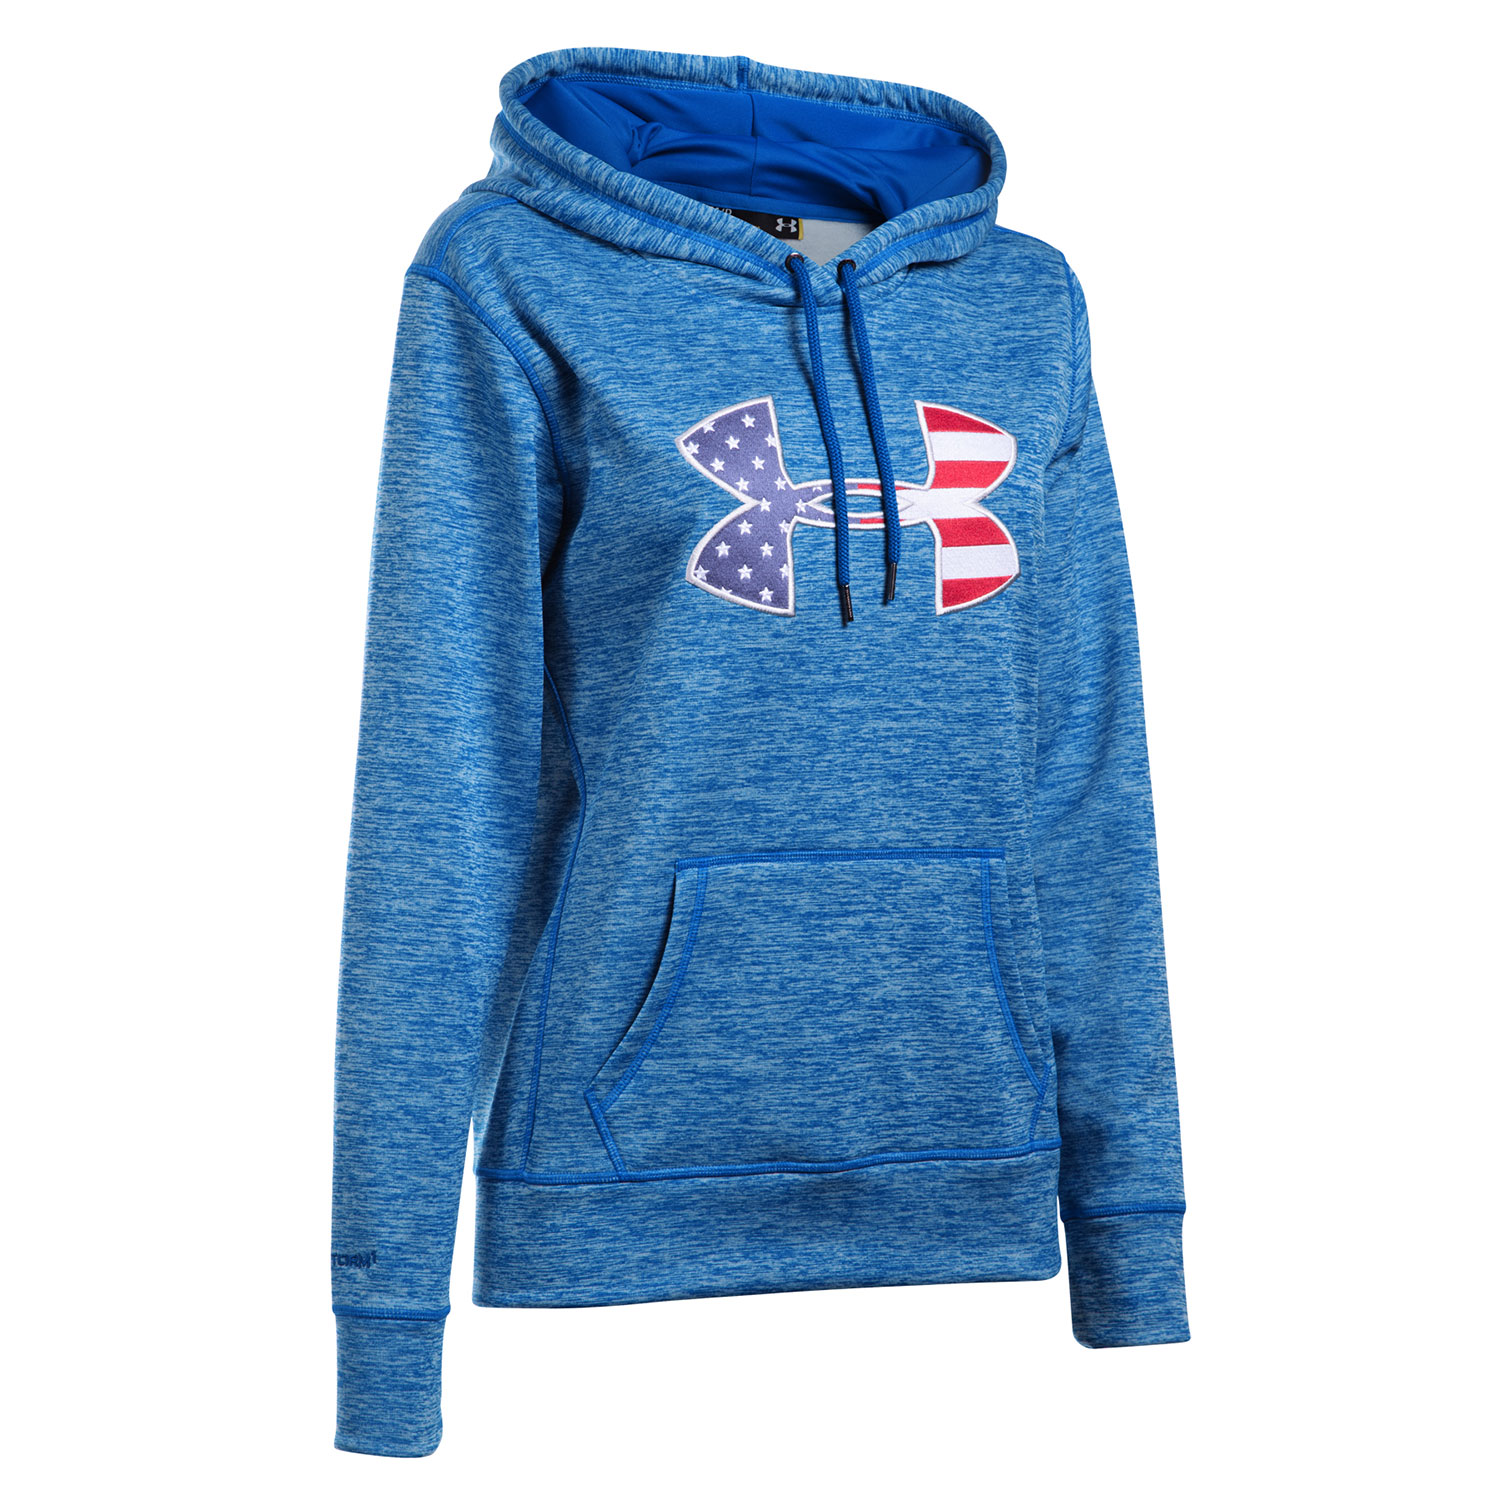 Under Armour Women's Storm Armour Fleece Freedom Hoodie